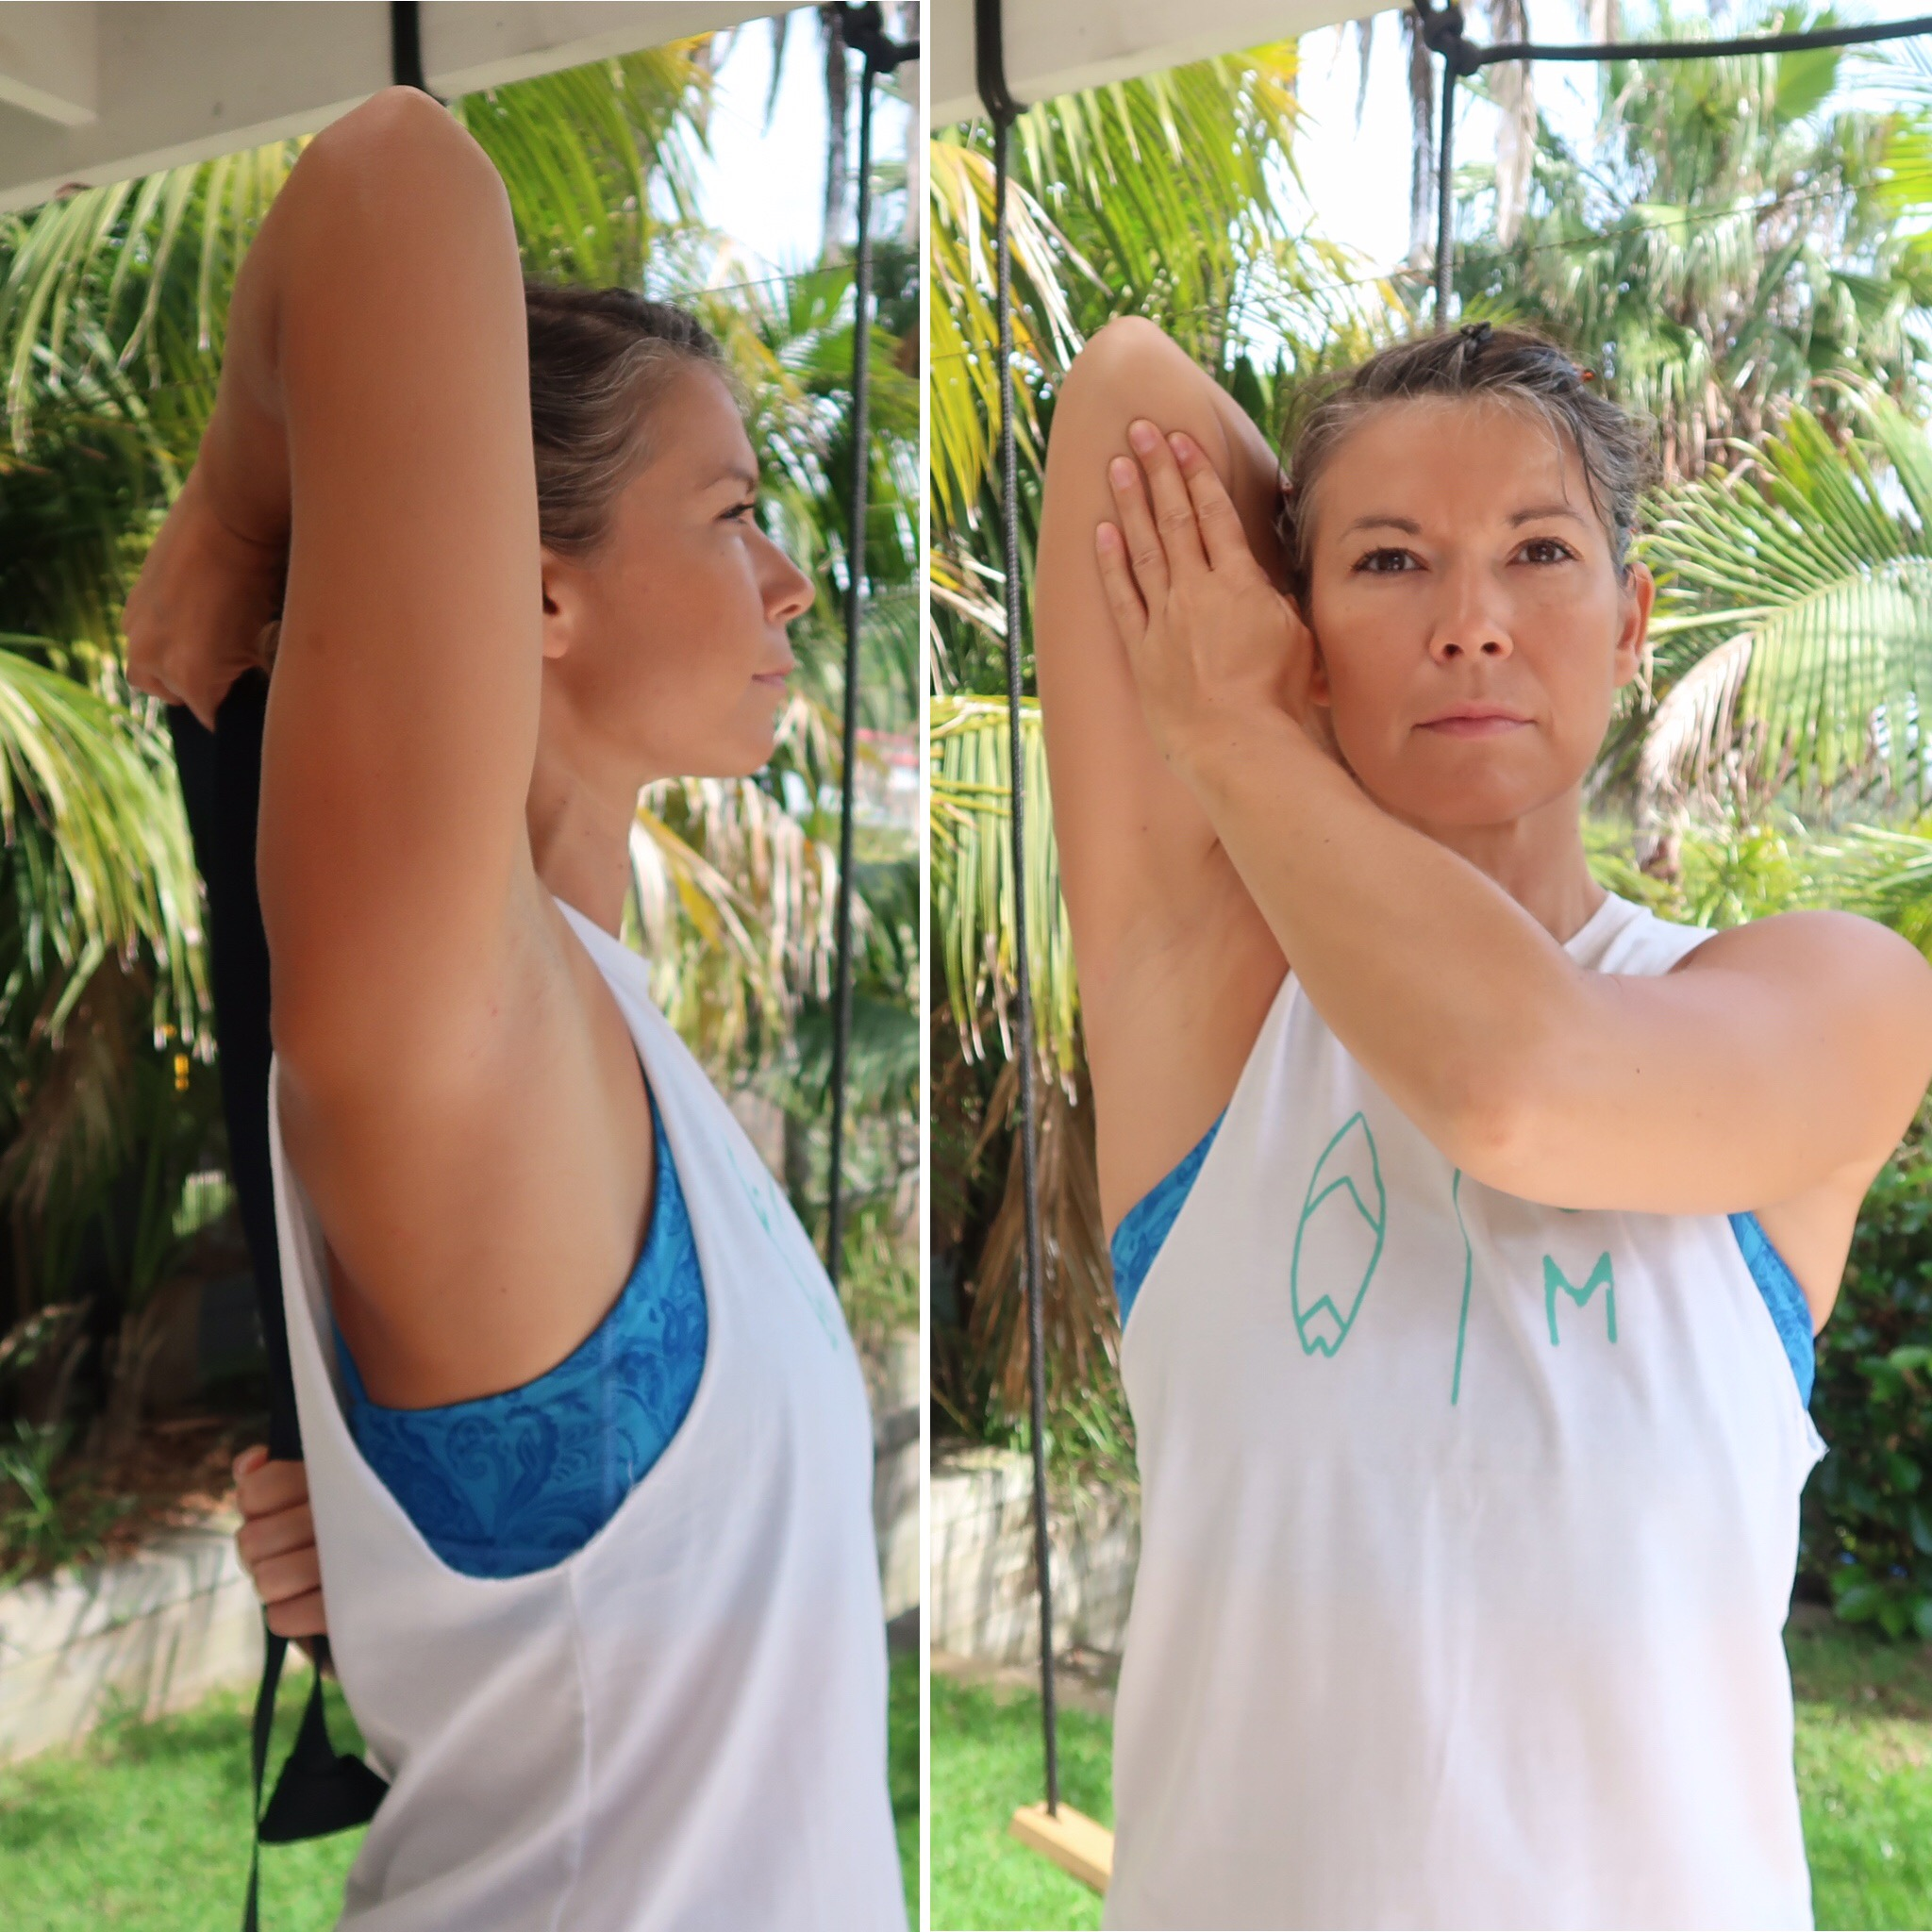 Tricep stretch  - take the elbow next to the ear and the elbow towards the sky. Keep the head, spine and ribs still (balance the book on your head). Either push the arm from the front or hold a strap behind the back body to pull the elbow skywards. Hold for 30-60 seconds.